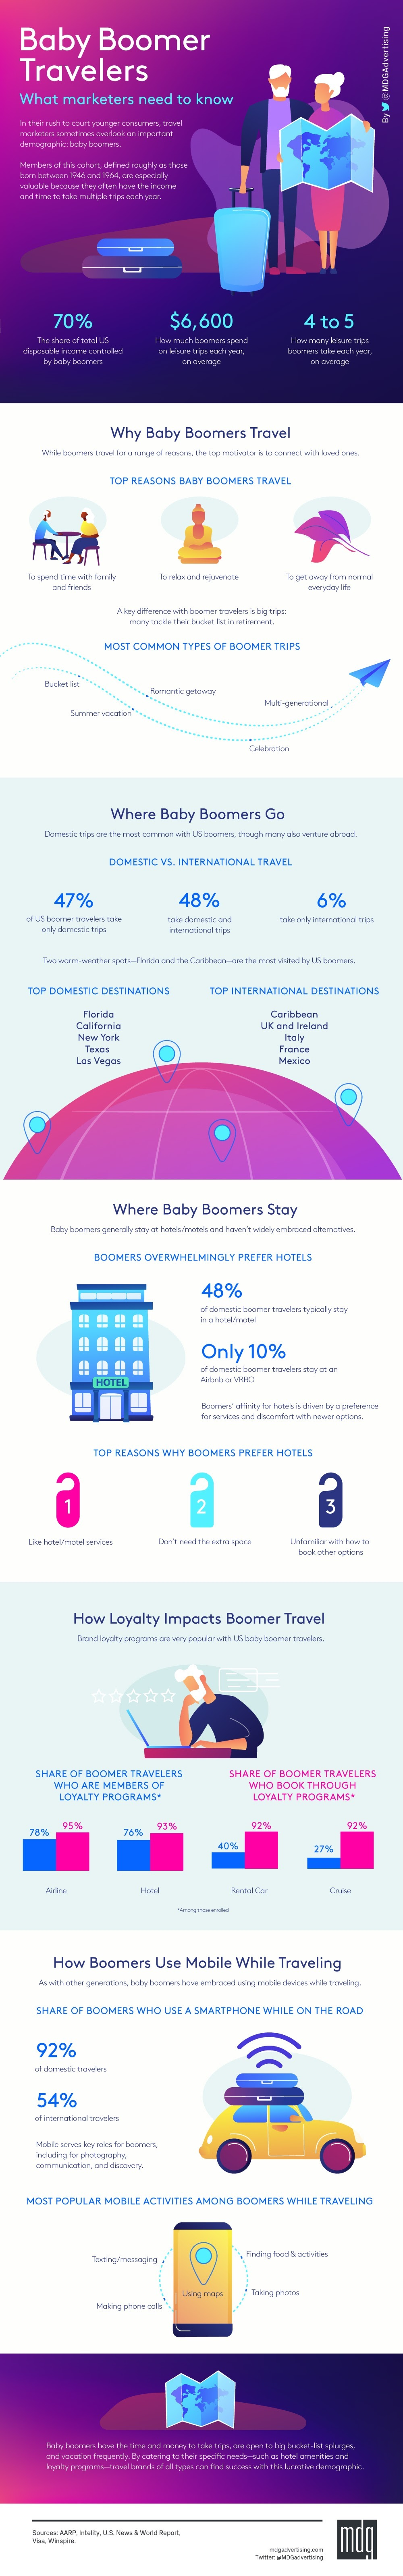 Baby boomer travelers – A remunerative demographic #infographic